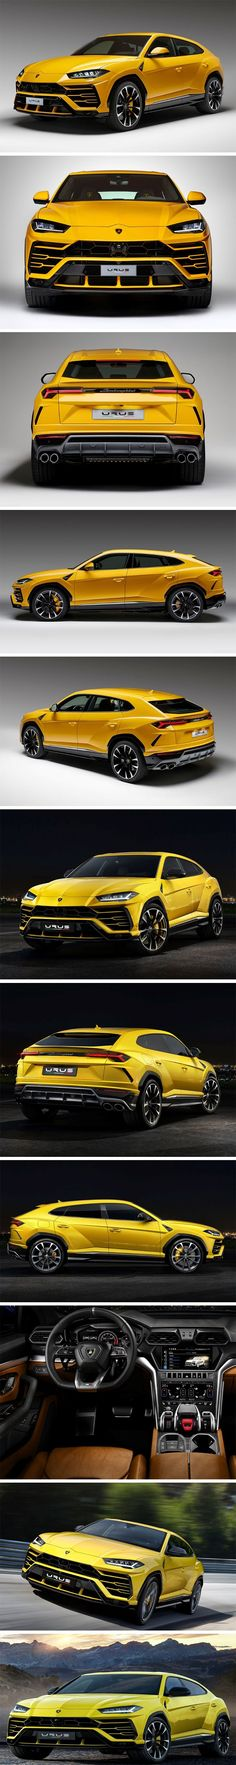 The Urus has been a long time coming! Especially since it's initial reveal in 2012, #lamborghini casually dropped hints every few years, indicating a 2018 release and here we are now, with the car being unveiled in full grandeur… touted as one of the few Lamborghini cars with 4 seats… and a car that the company calls the world's first Super Sports Utility Vehicle (SSUV).